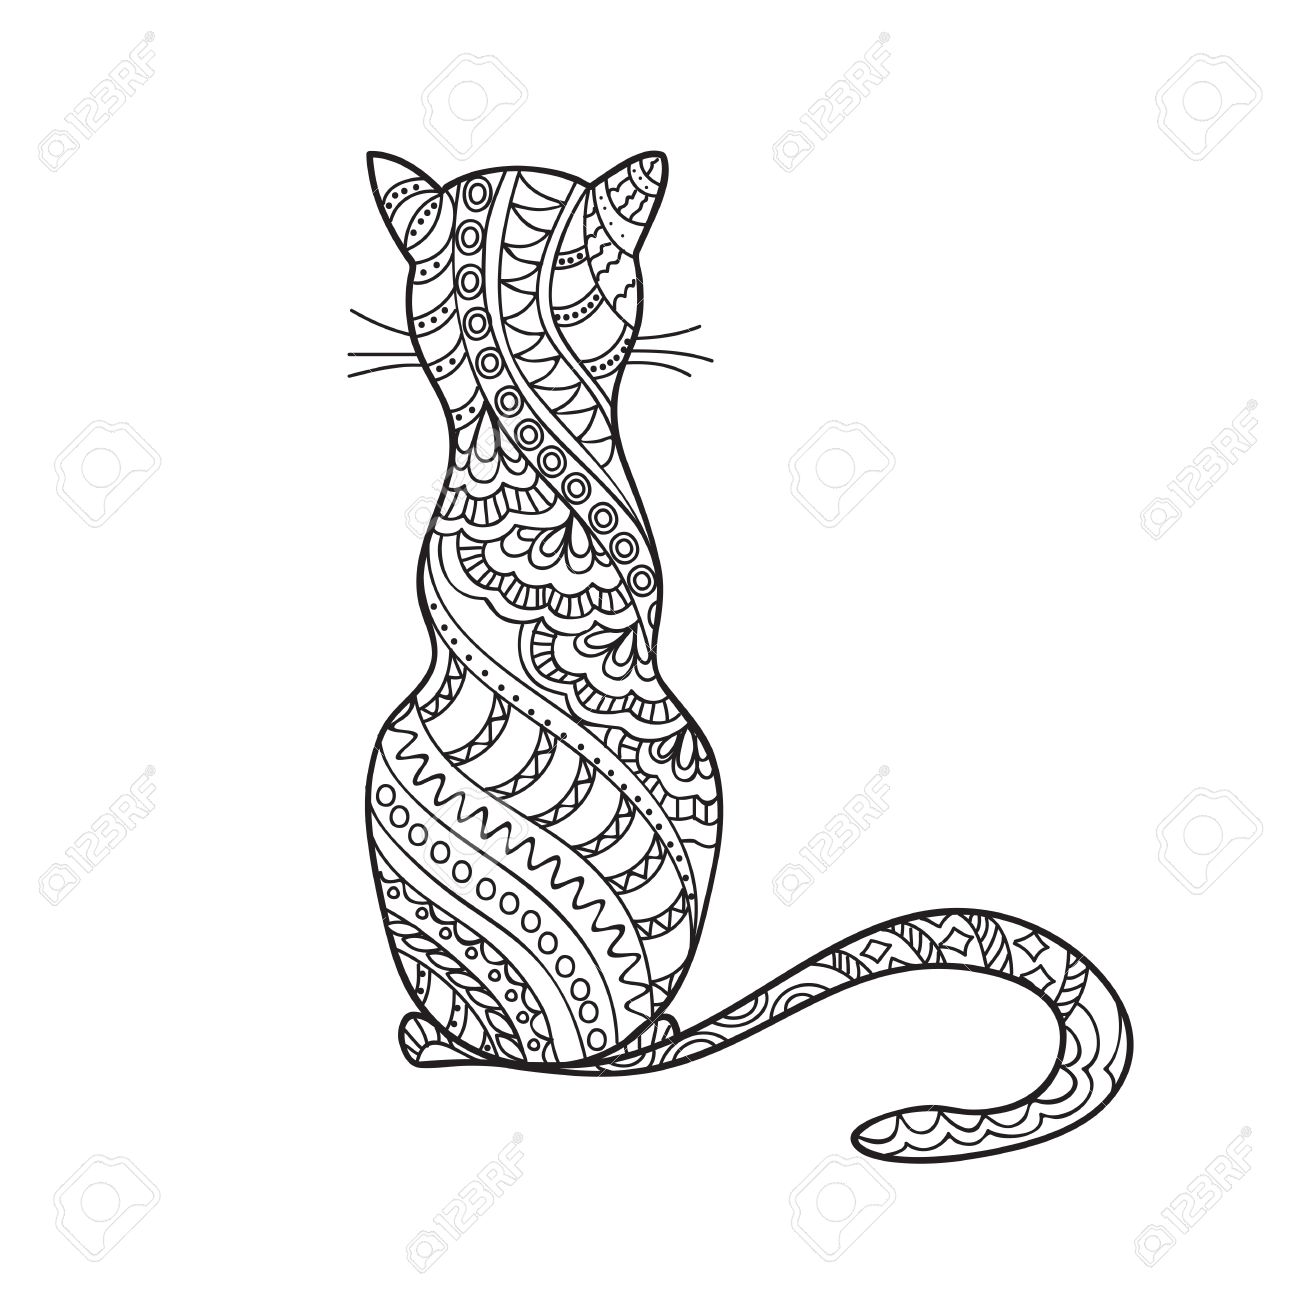 1300x1300 Hand Drawn Decorated Cartoon Cat In Boho Style. Pencil Drawing